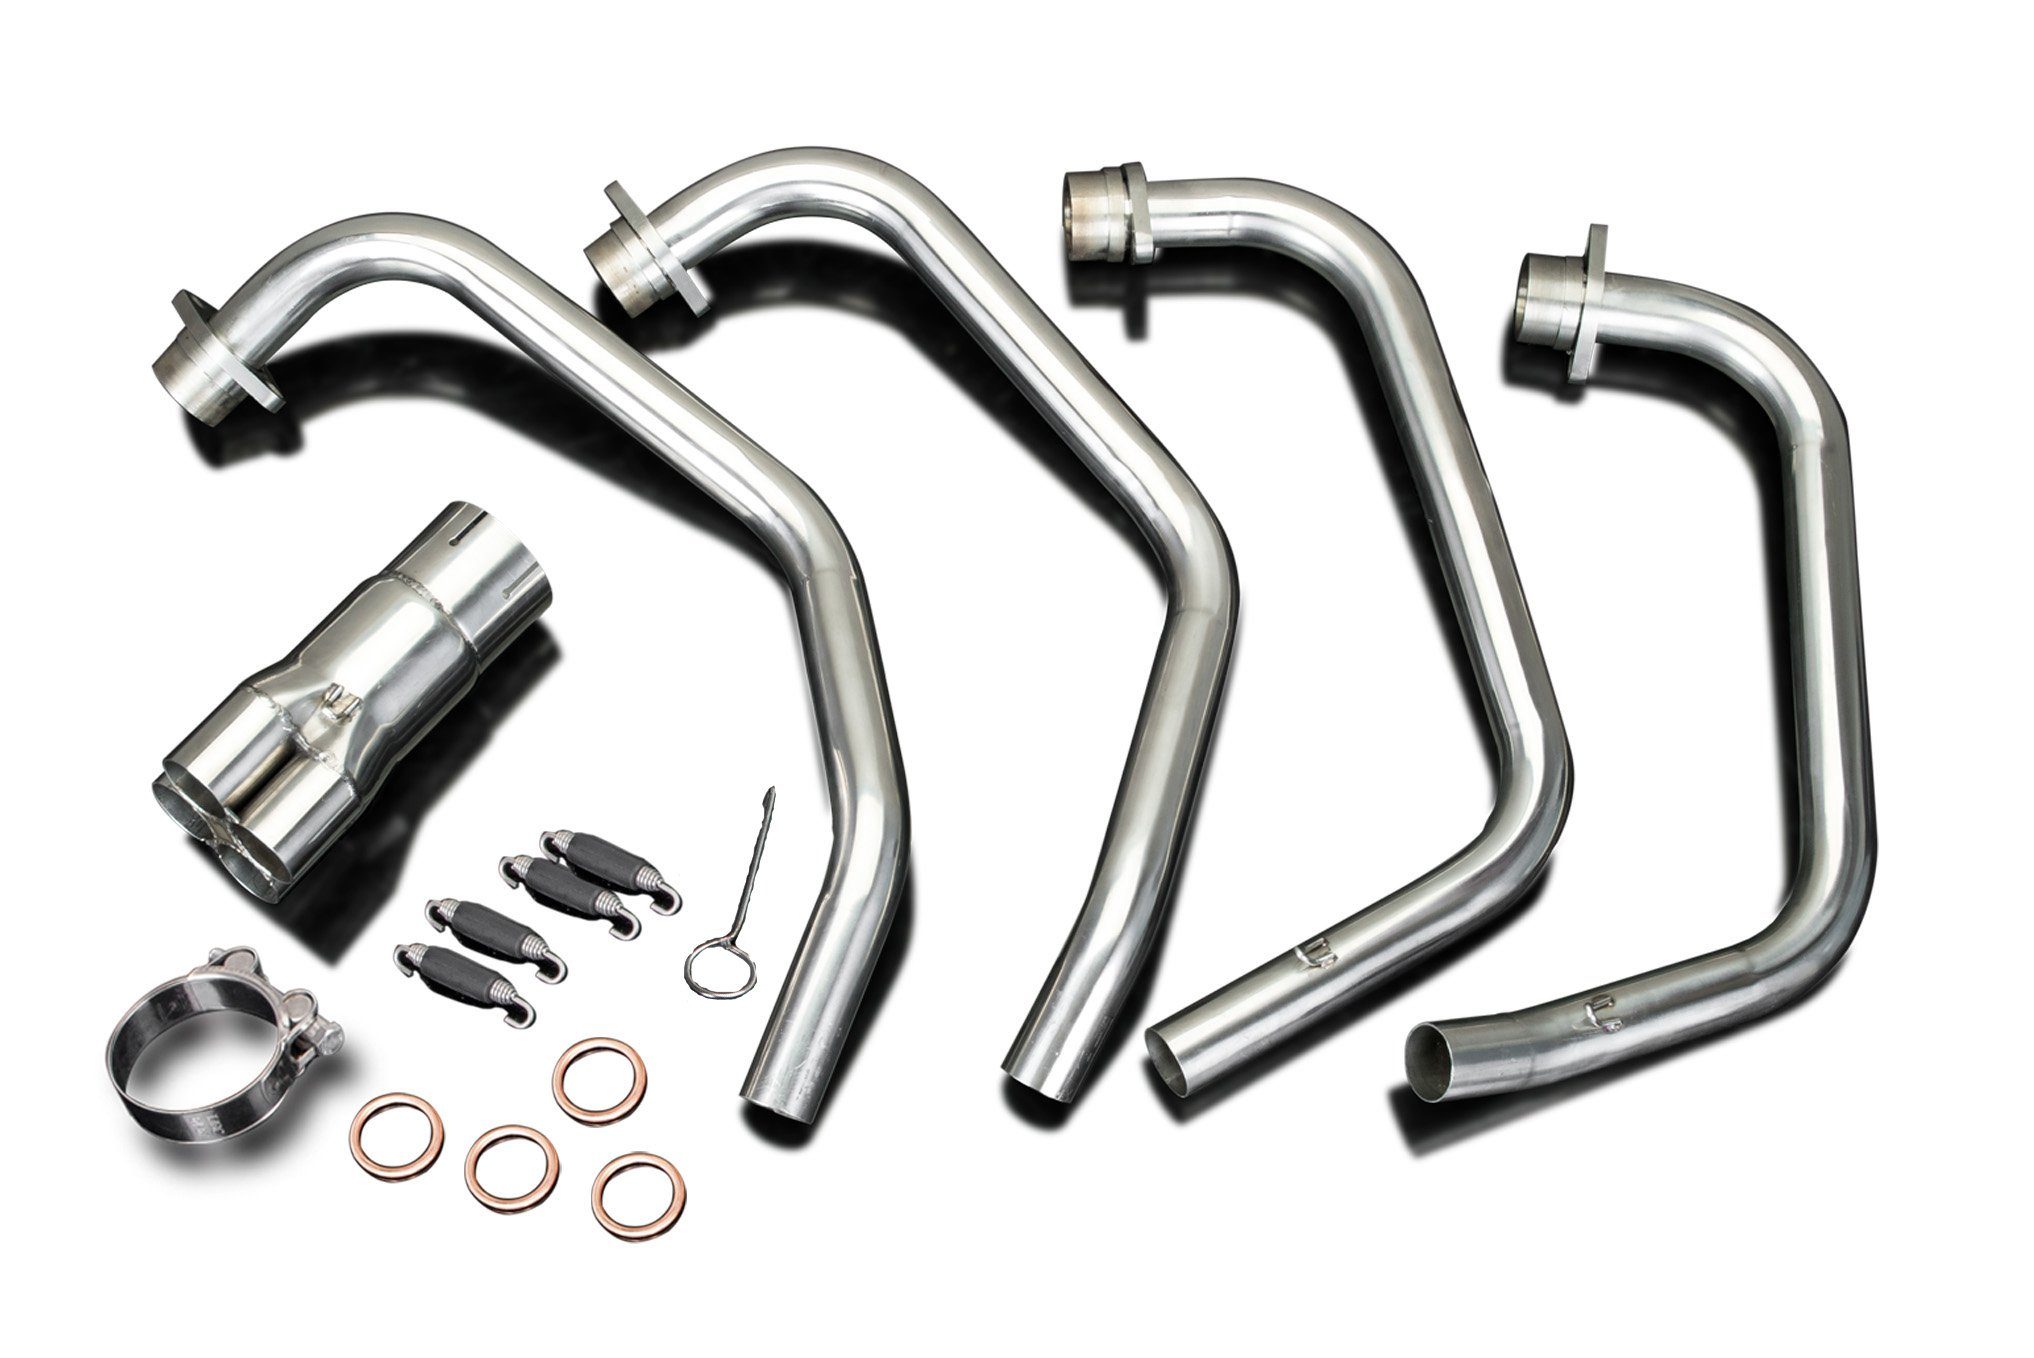 Honda CB750F Super Sport Stainless Steel Downpipes Header Exhaust Manifold 79 80 81 82 83 by Delkevic